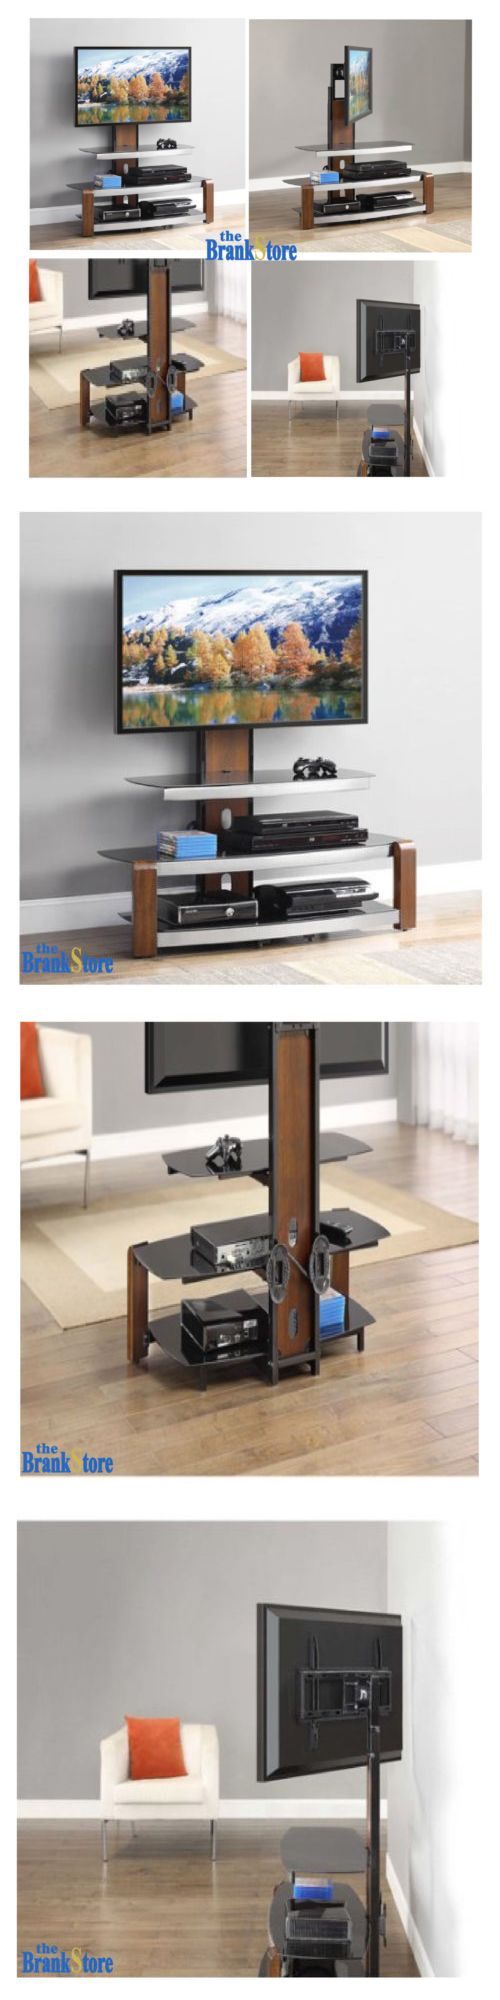 Entertainment Units TV Stands: Tv Stand With Mount Swinging Holder Home Entertainment Center Wood Glass Storage -> BUY IT NOW ONLY: $110.52 on eBay!